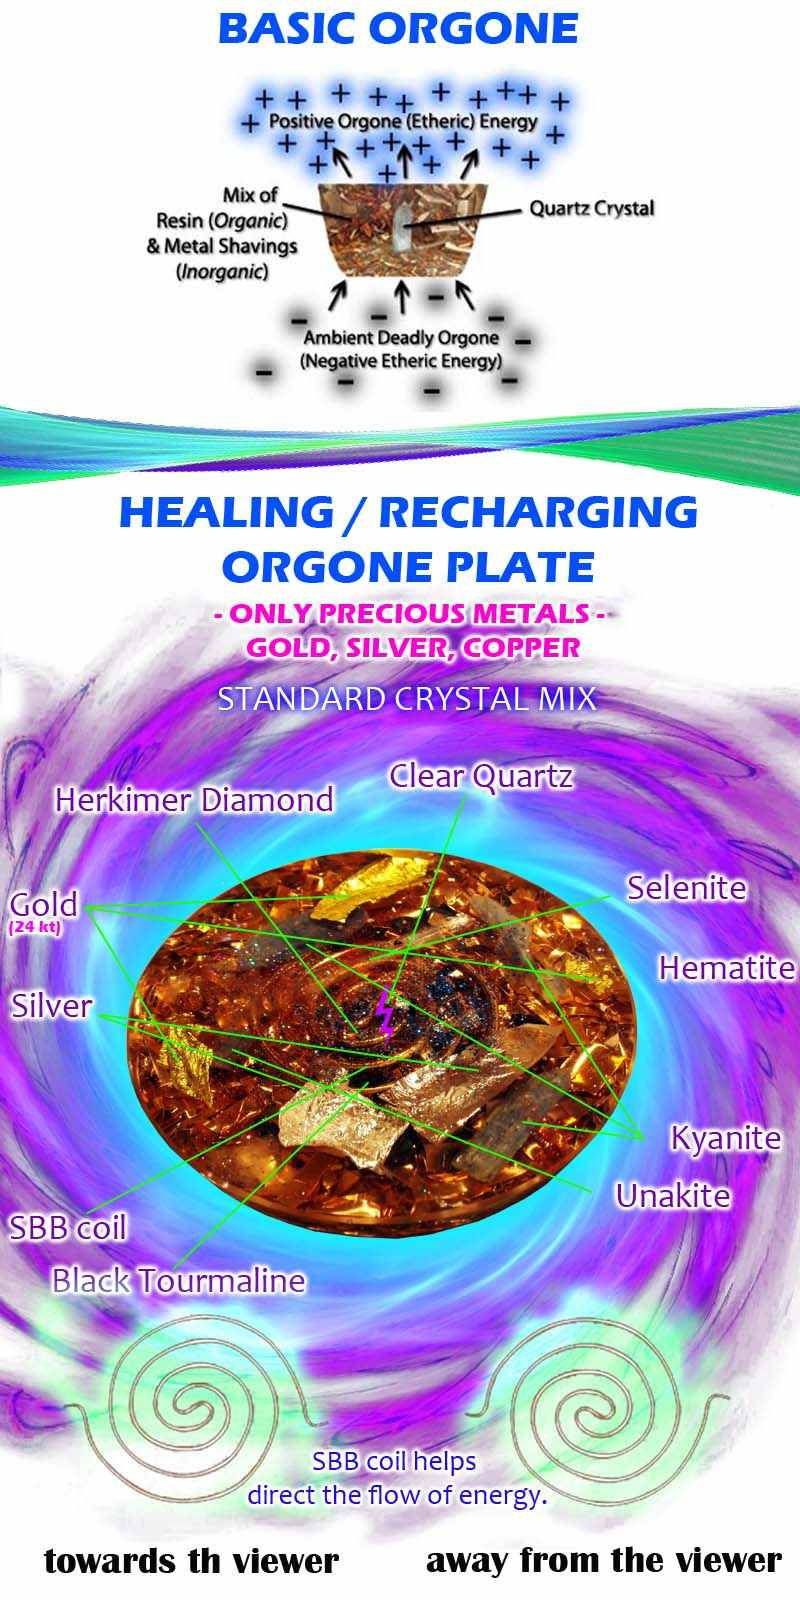 Kitchen Range Stovetop additionally Ladder Diagram Images also Vaso 3F furthermore Diagram Of Zygote moreover Stock Illustration Reality Cycle Diagram Law Attraction Thoughts Reality Explained How Your Create Your Image52460631. on power flower diagram